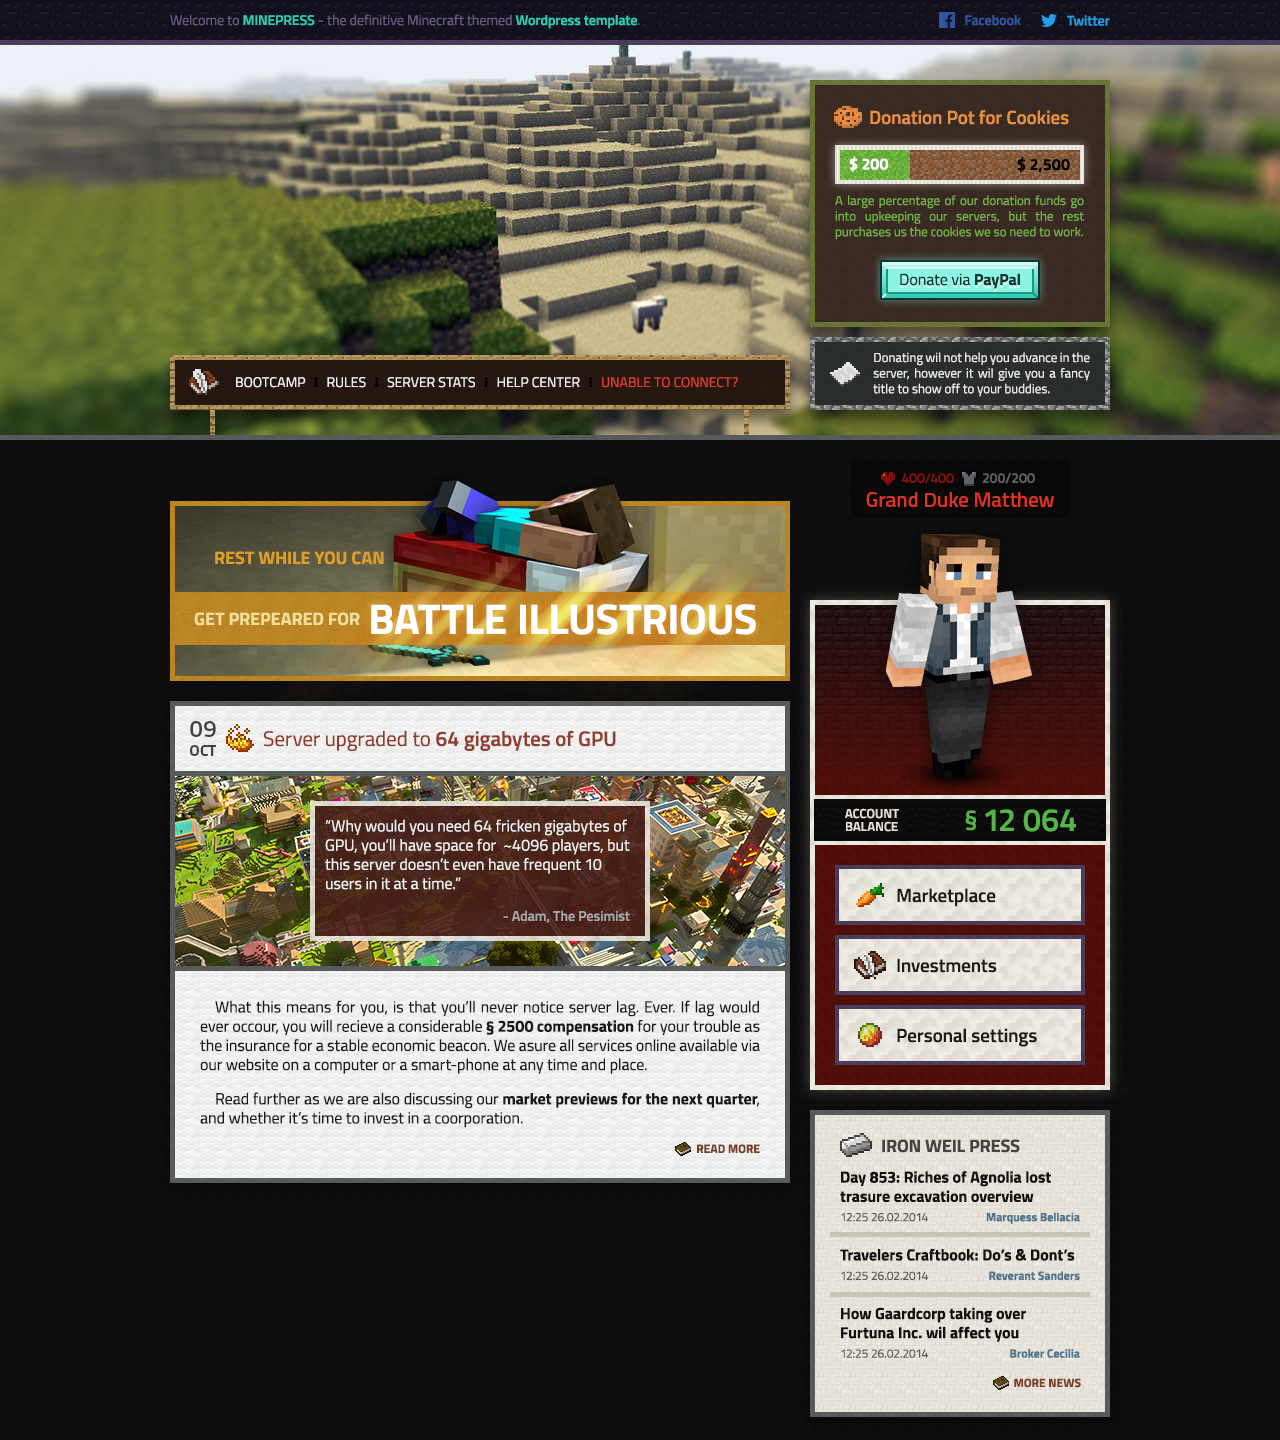 MINEPRESS - Minecraft Wordpress template WIP by asailant2k on ...